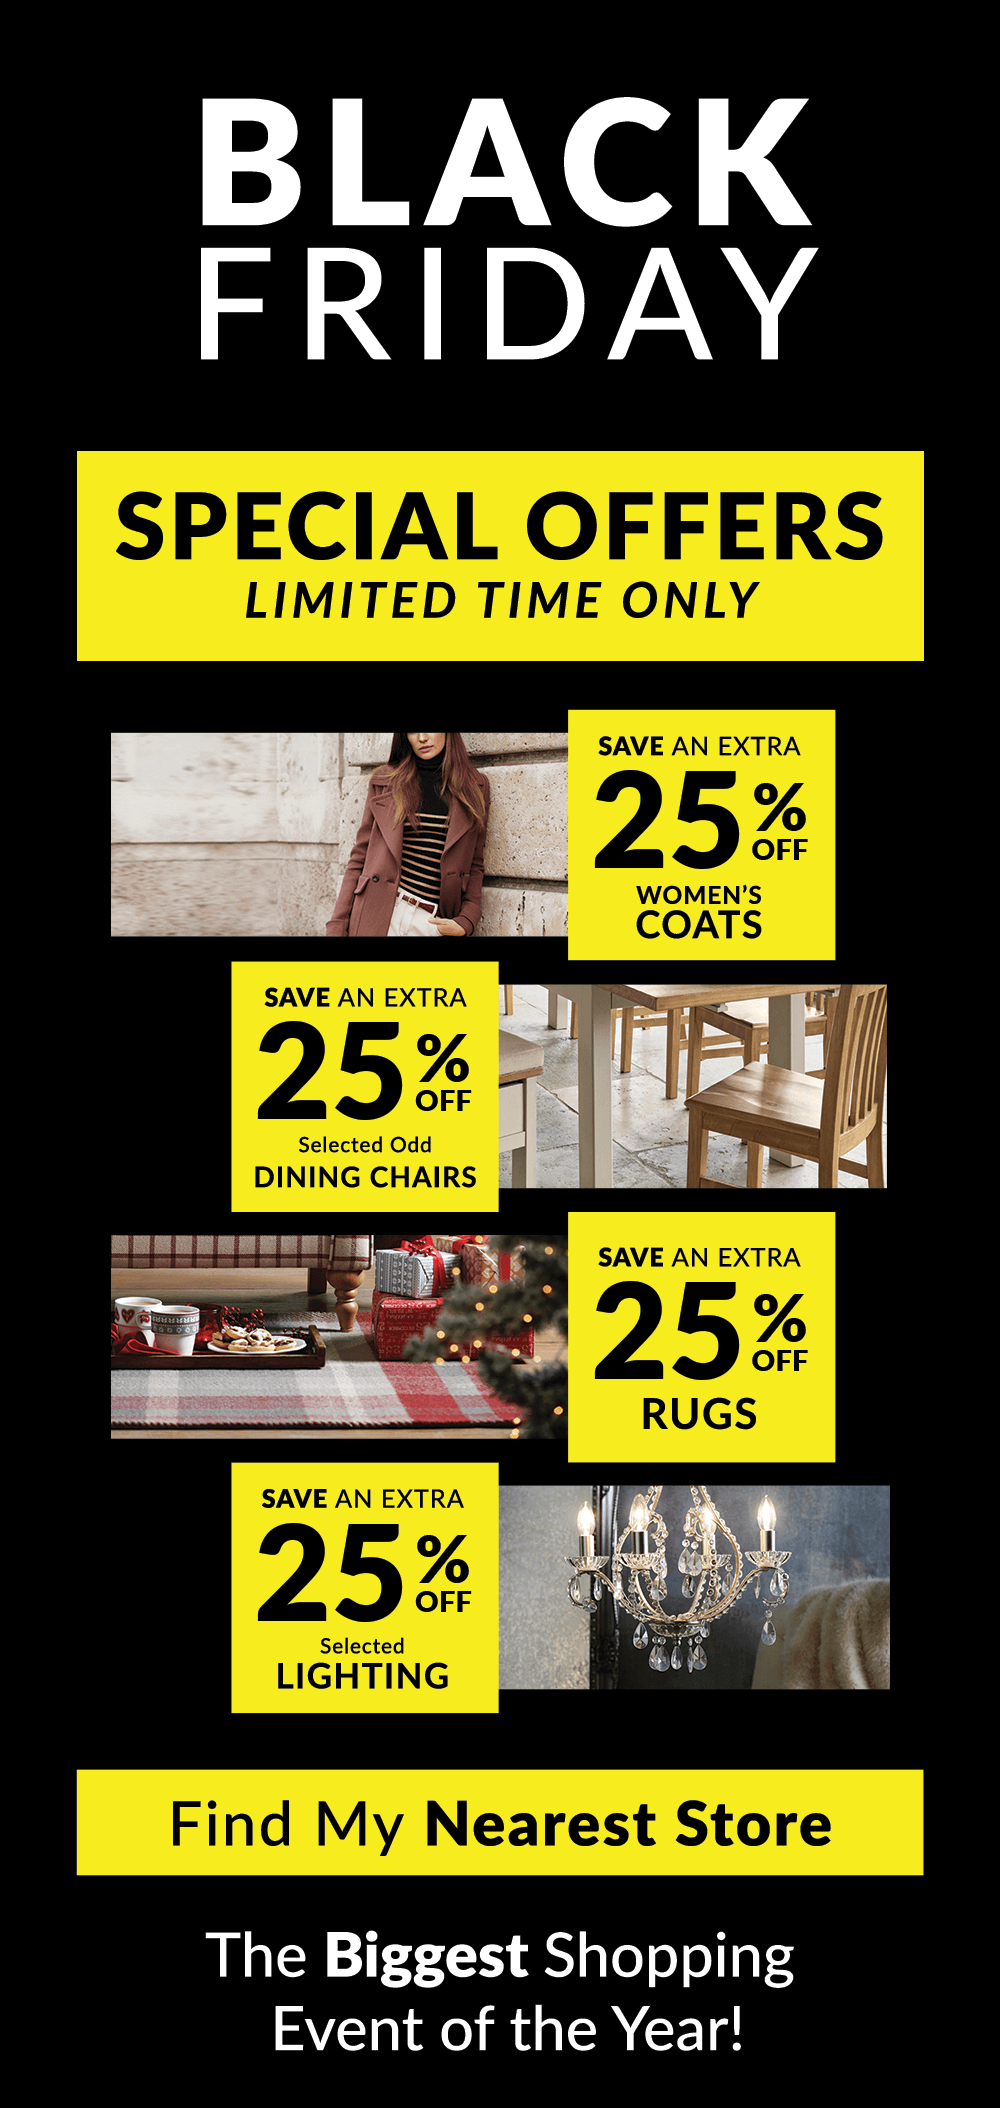 Black Friday Special Offers!